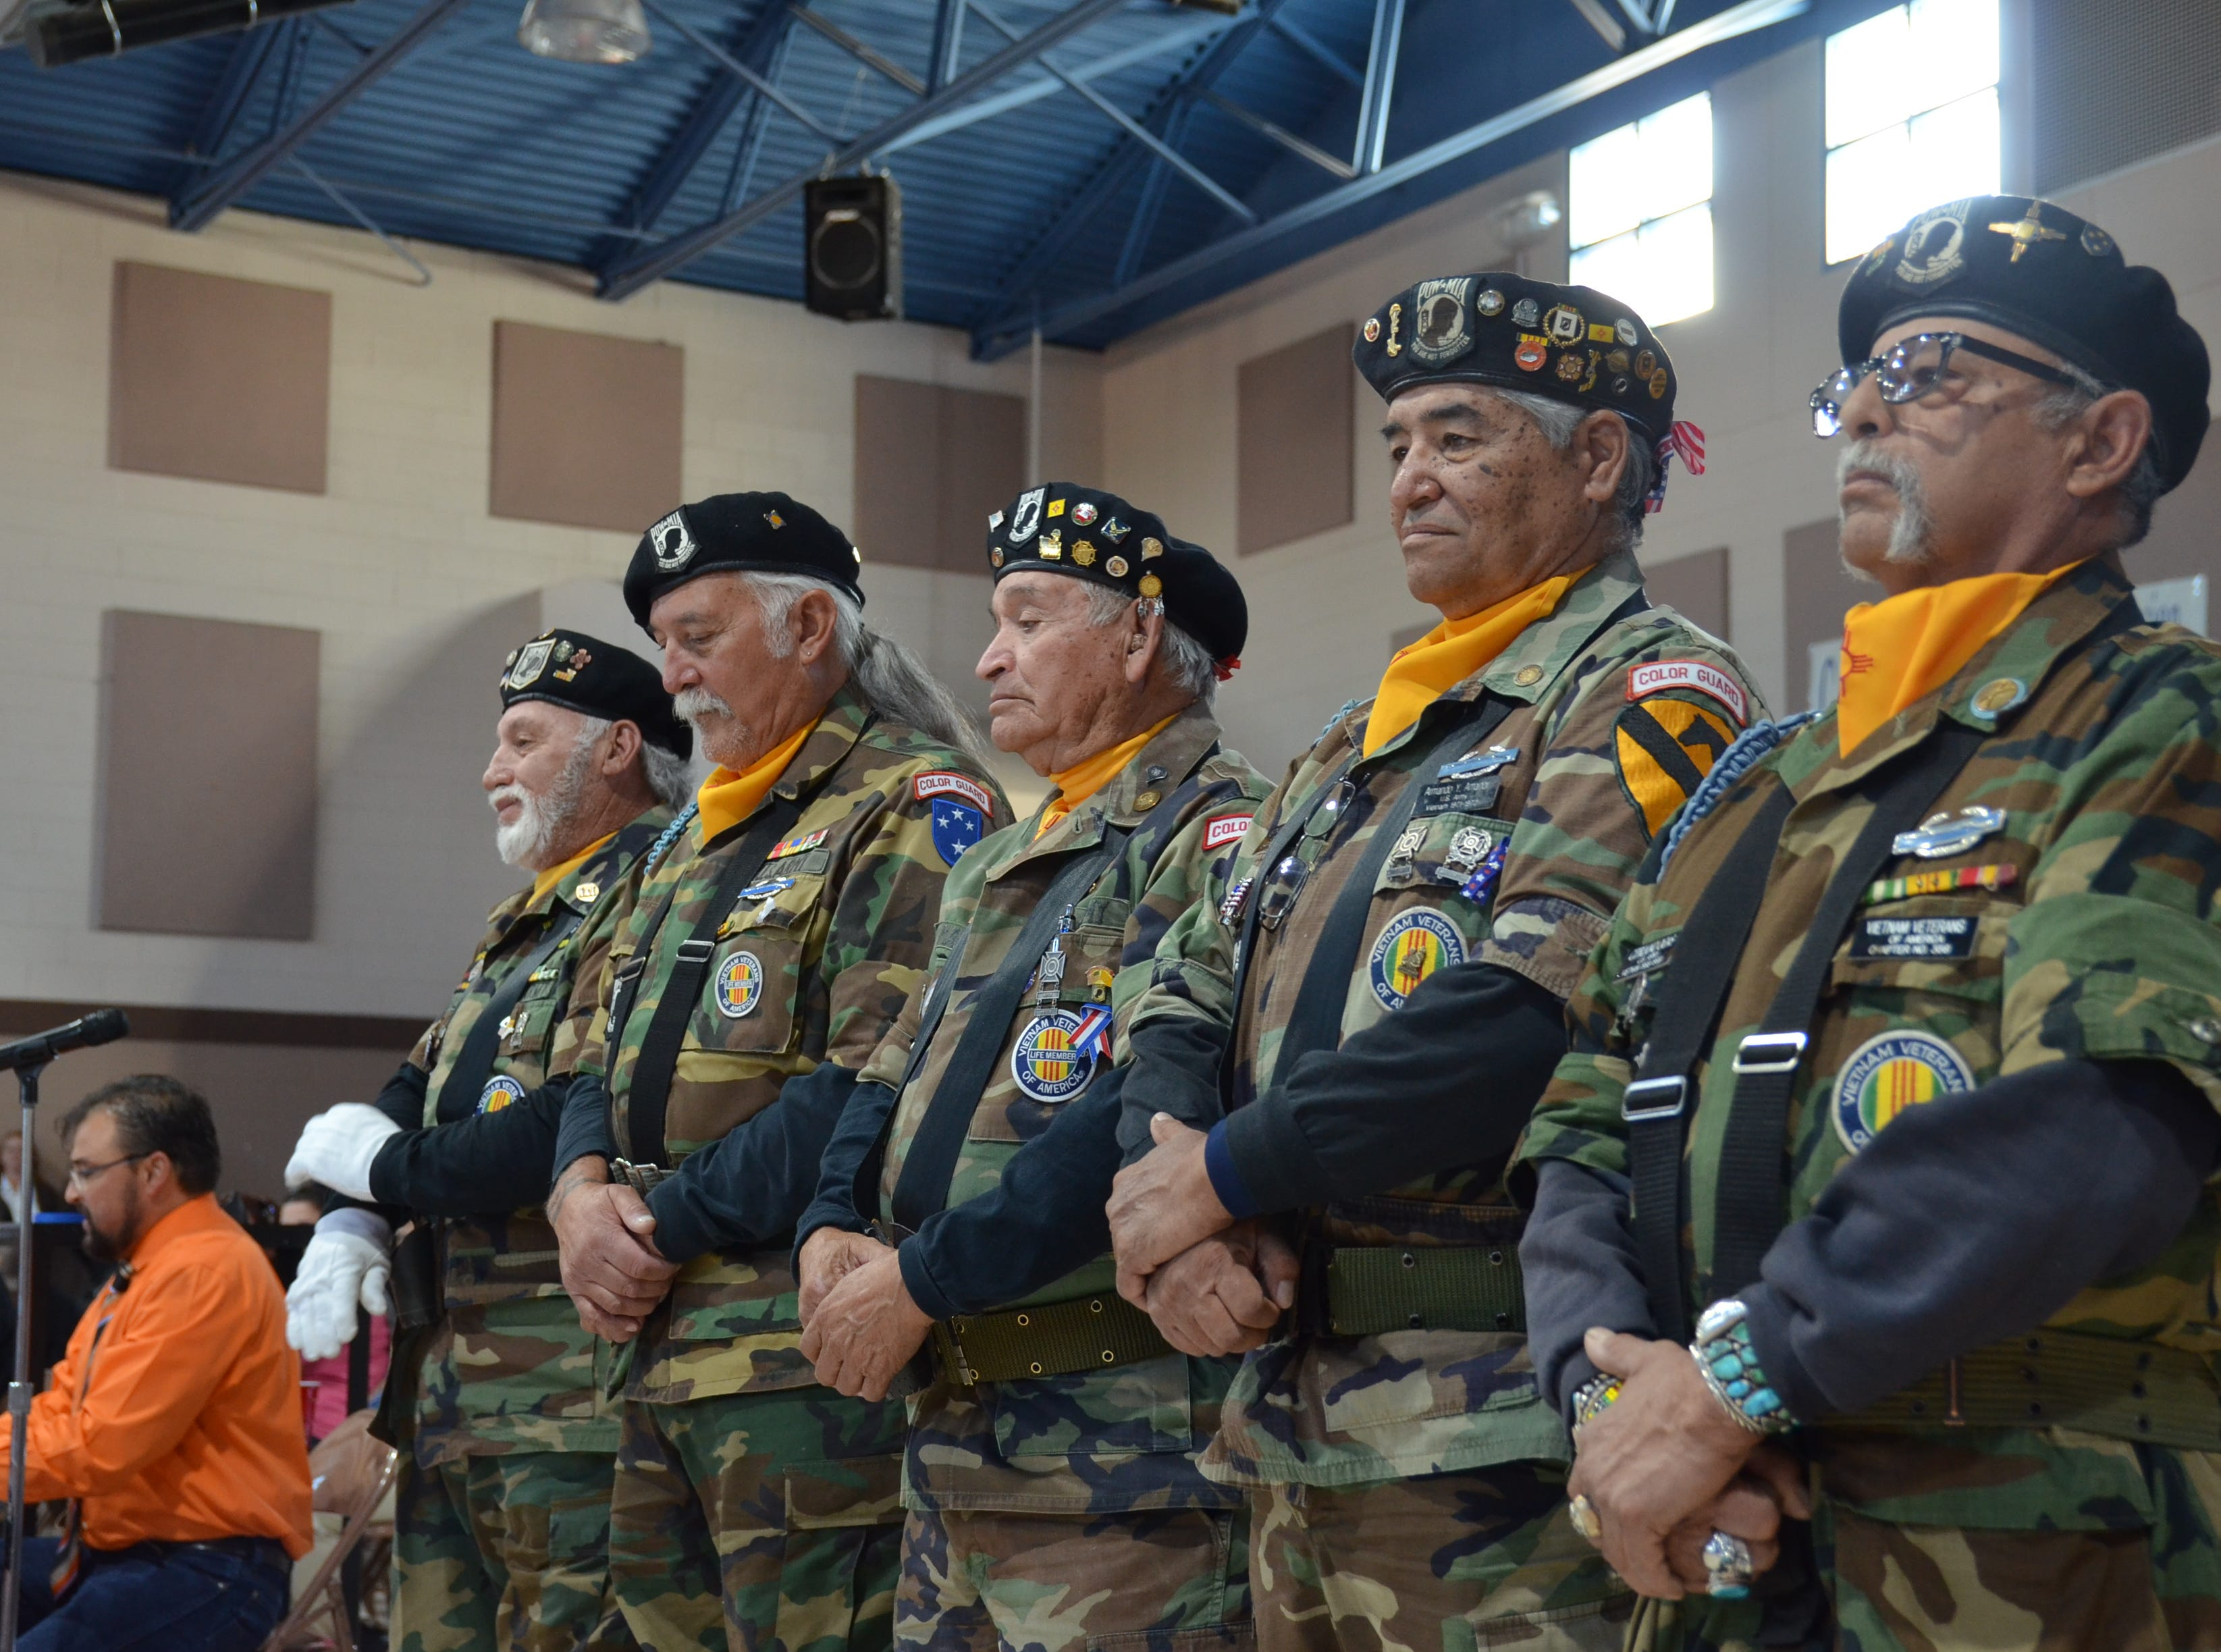 Left, Veterans Henry Morales, Jose Ray, Pablo Ortega Madrid, Armando Amador and Cipriano Ogas stand for God Bless the USA song performed by all school grades from Ruben S. Torres Elementary School.